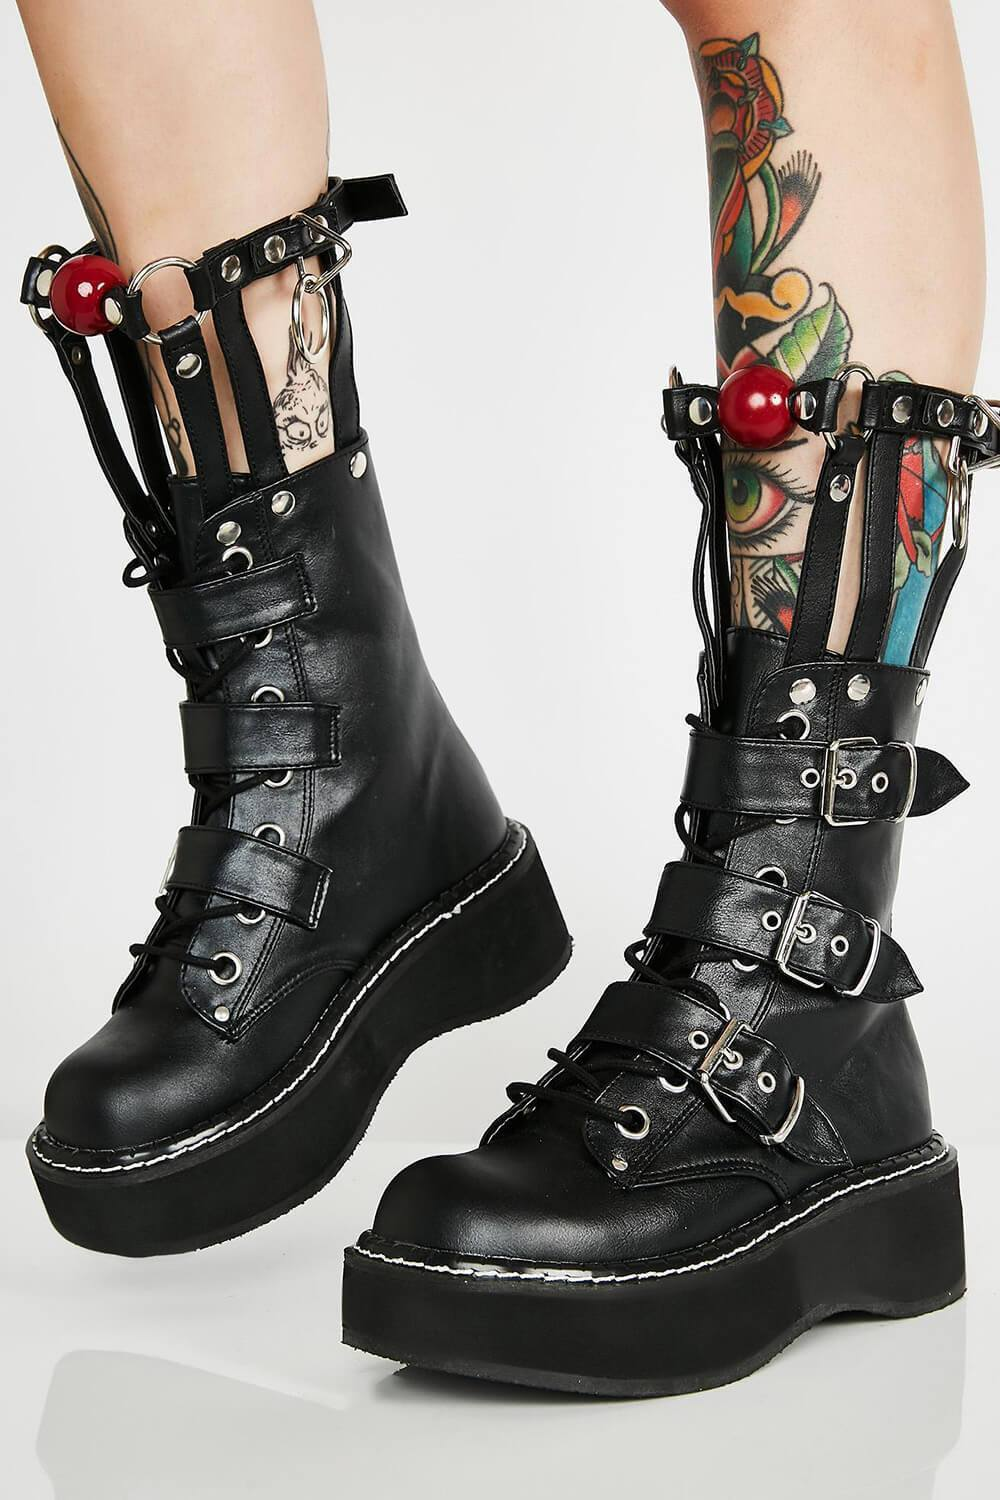 Black Buckle Chunky Platform Boots With Silver Hardware